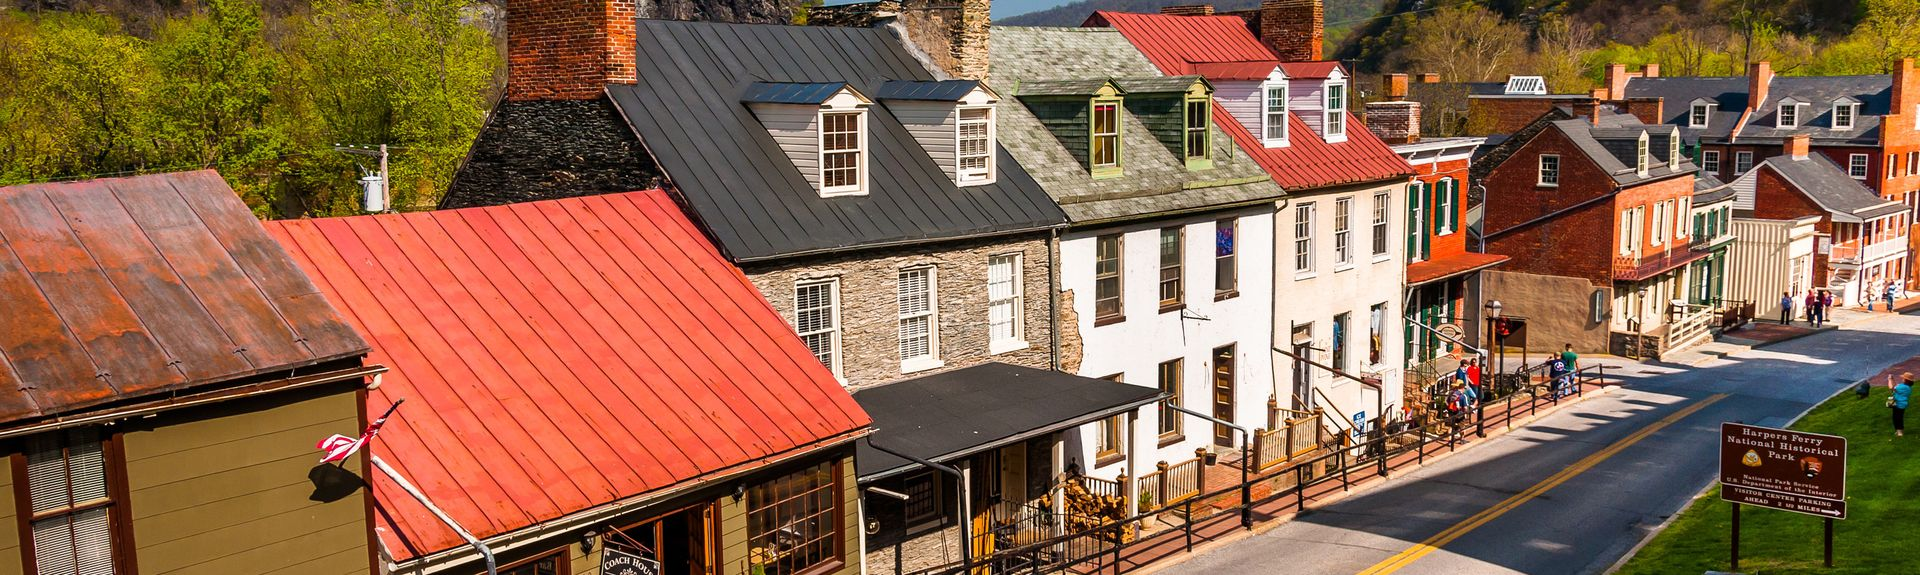 Harpers Ferry, WV, USA